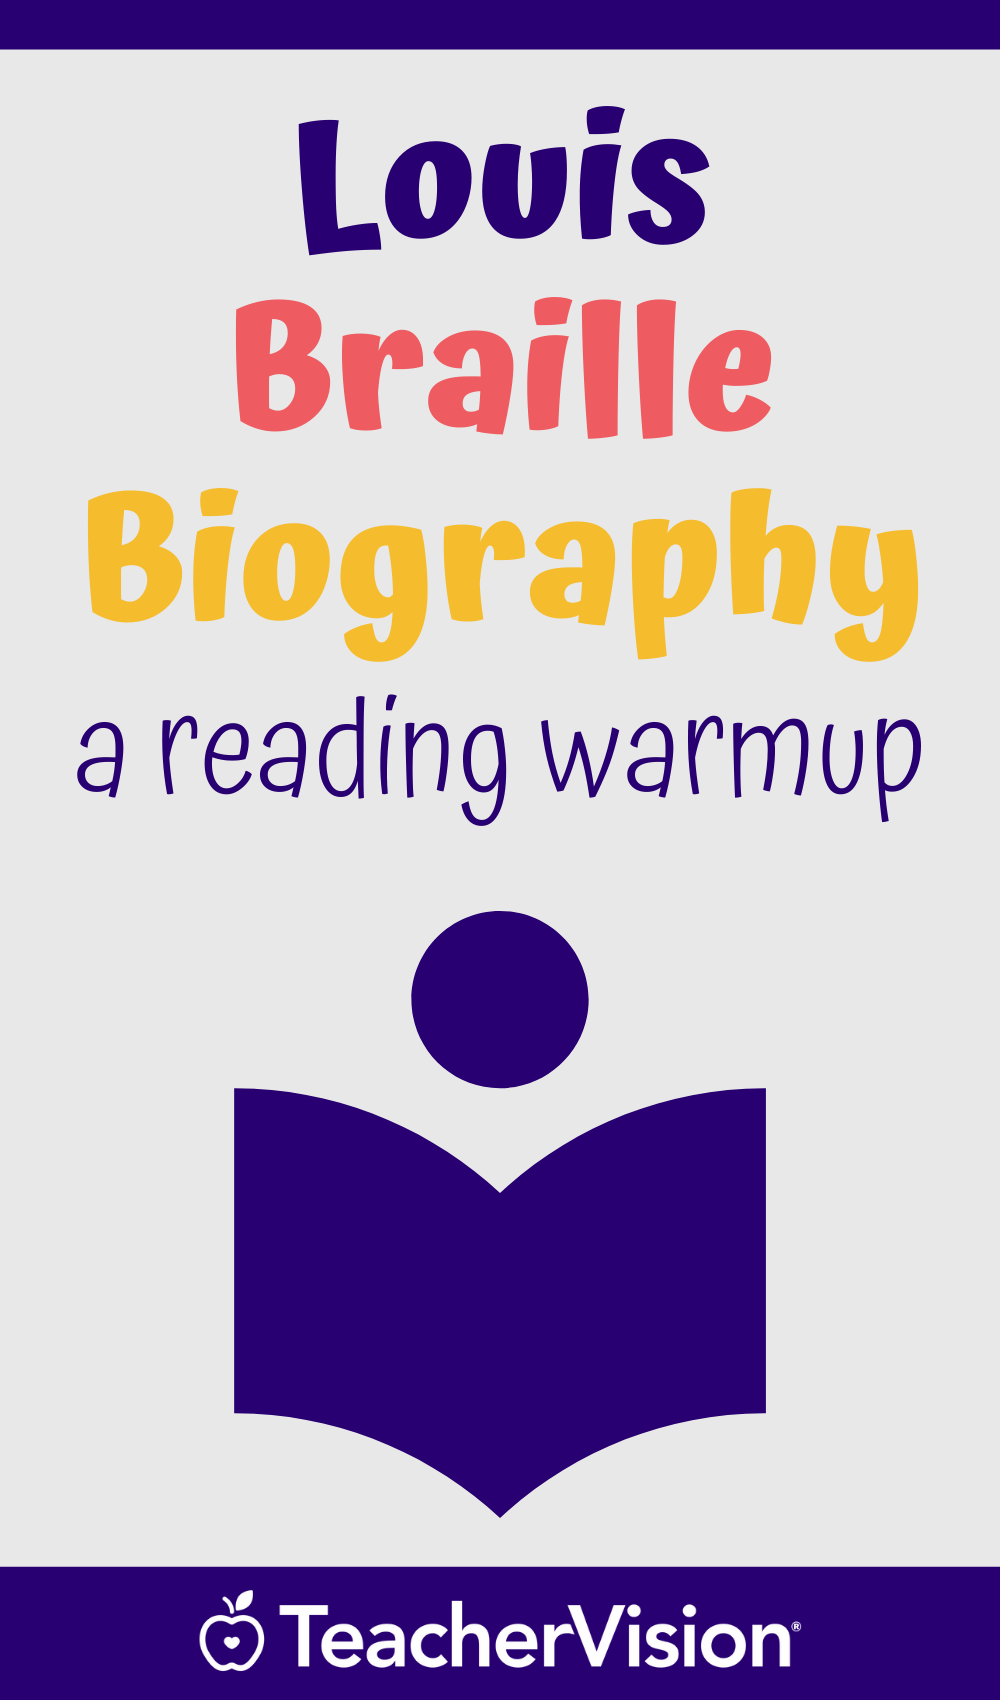 Louis Braille Biography Printable Reading Warm Up For Grades 5 6 Reading Comprehension Questions Reading Warmups Reading Comprehension [ 1700 x 1000 Pixel ]